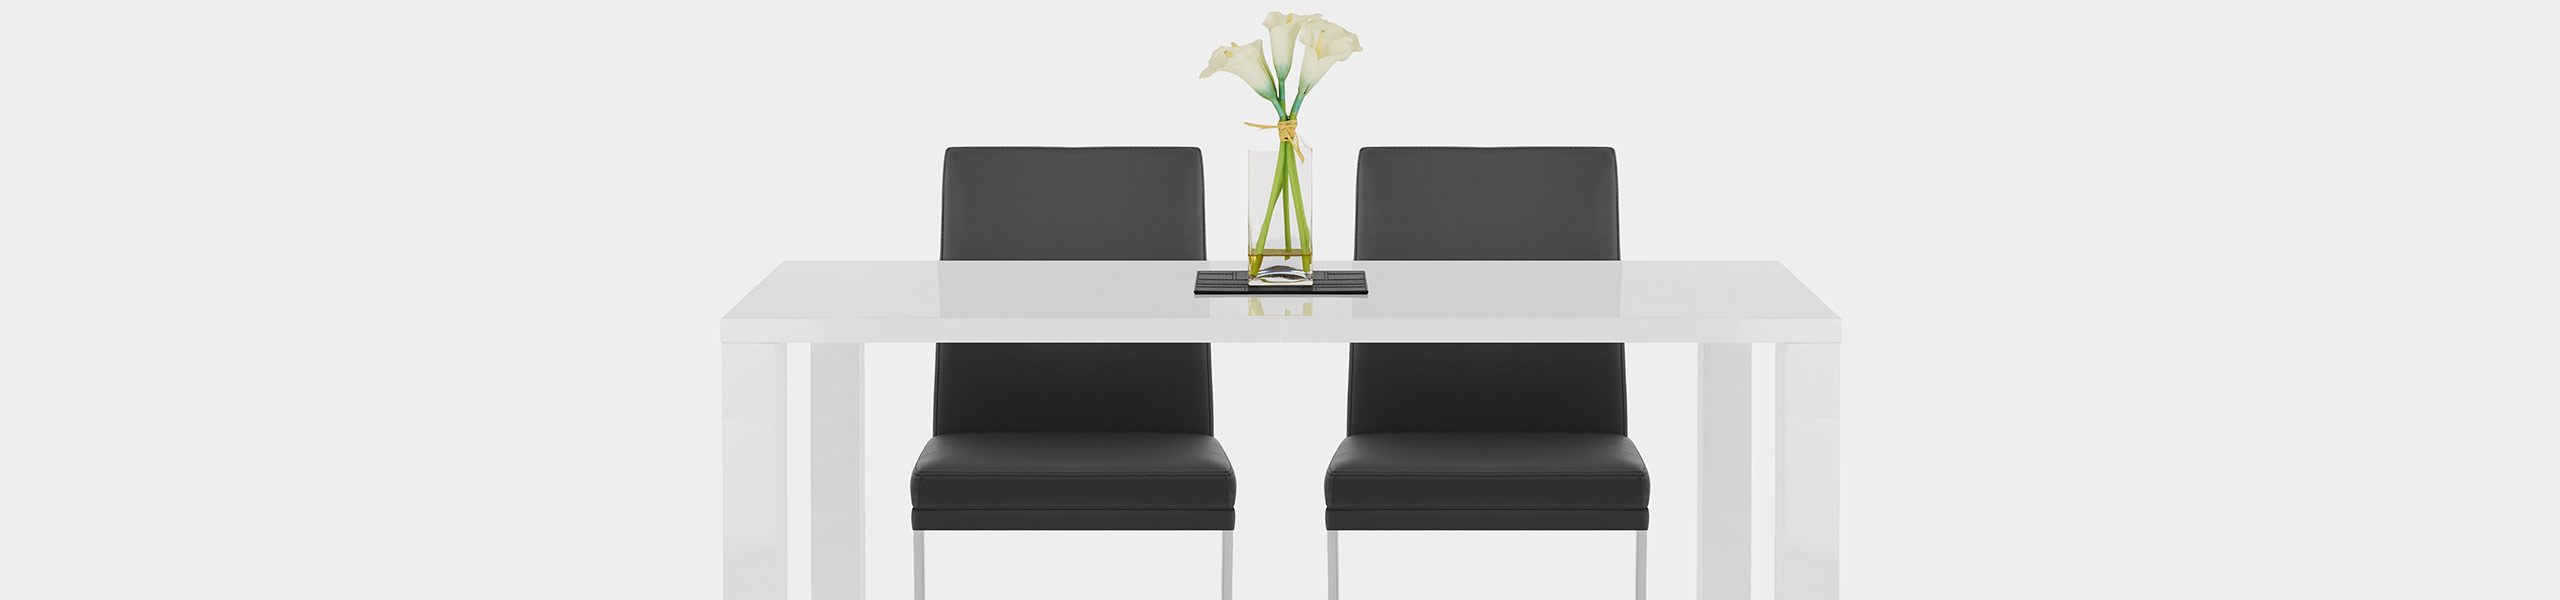 Jade Dining Chair Black Video Banner